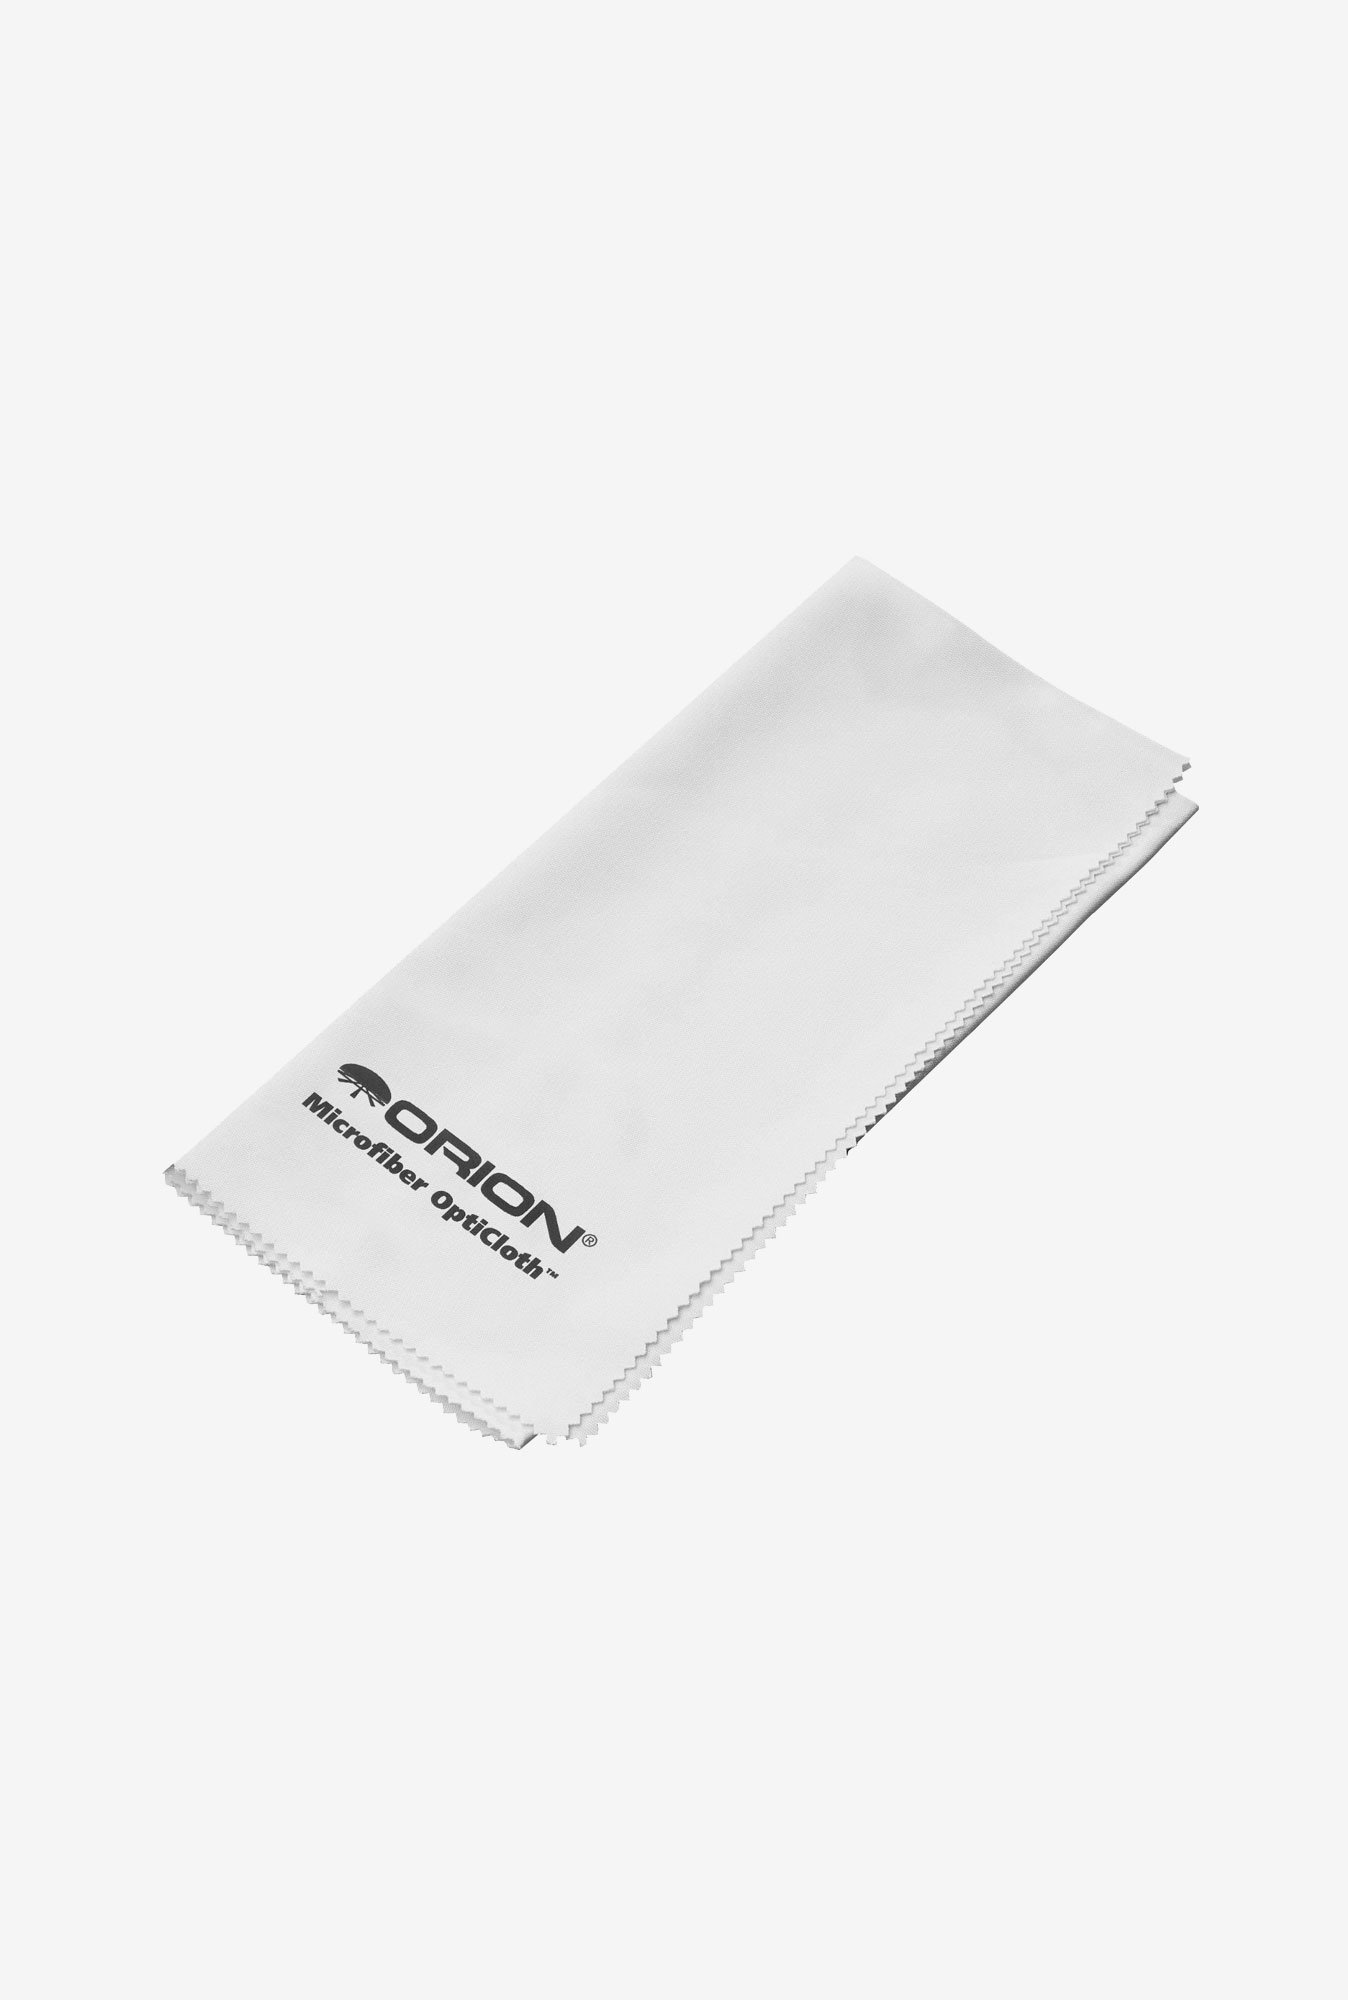 Orion 5833 Microfiber Optics Cleaning Cloth (White)